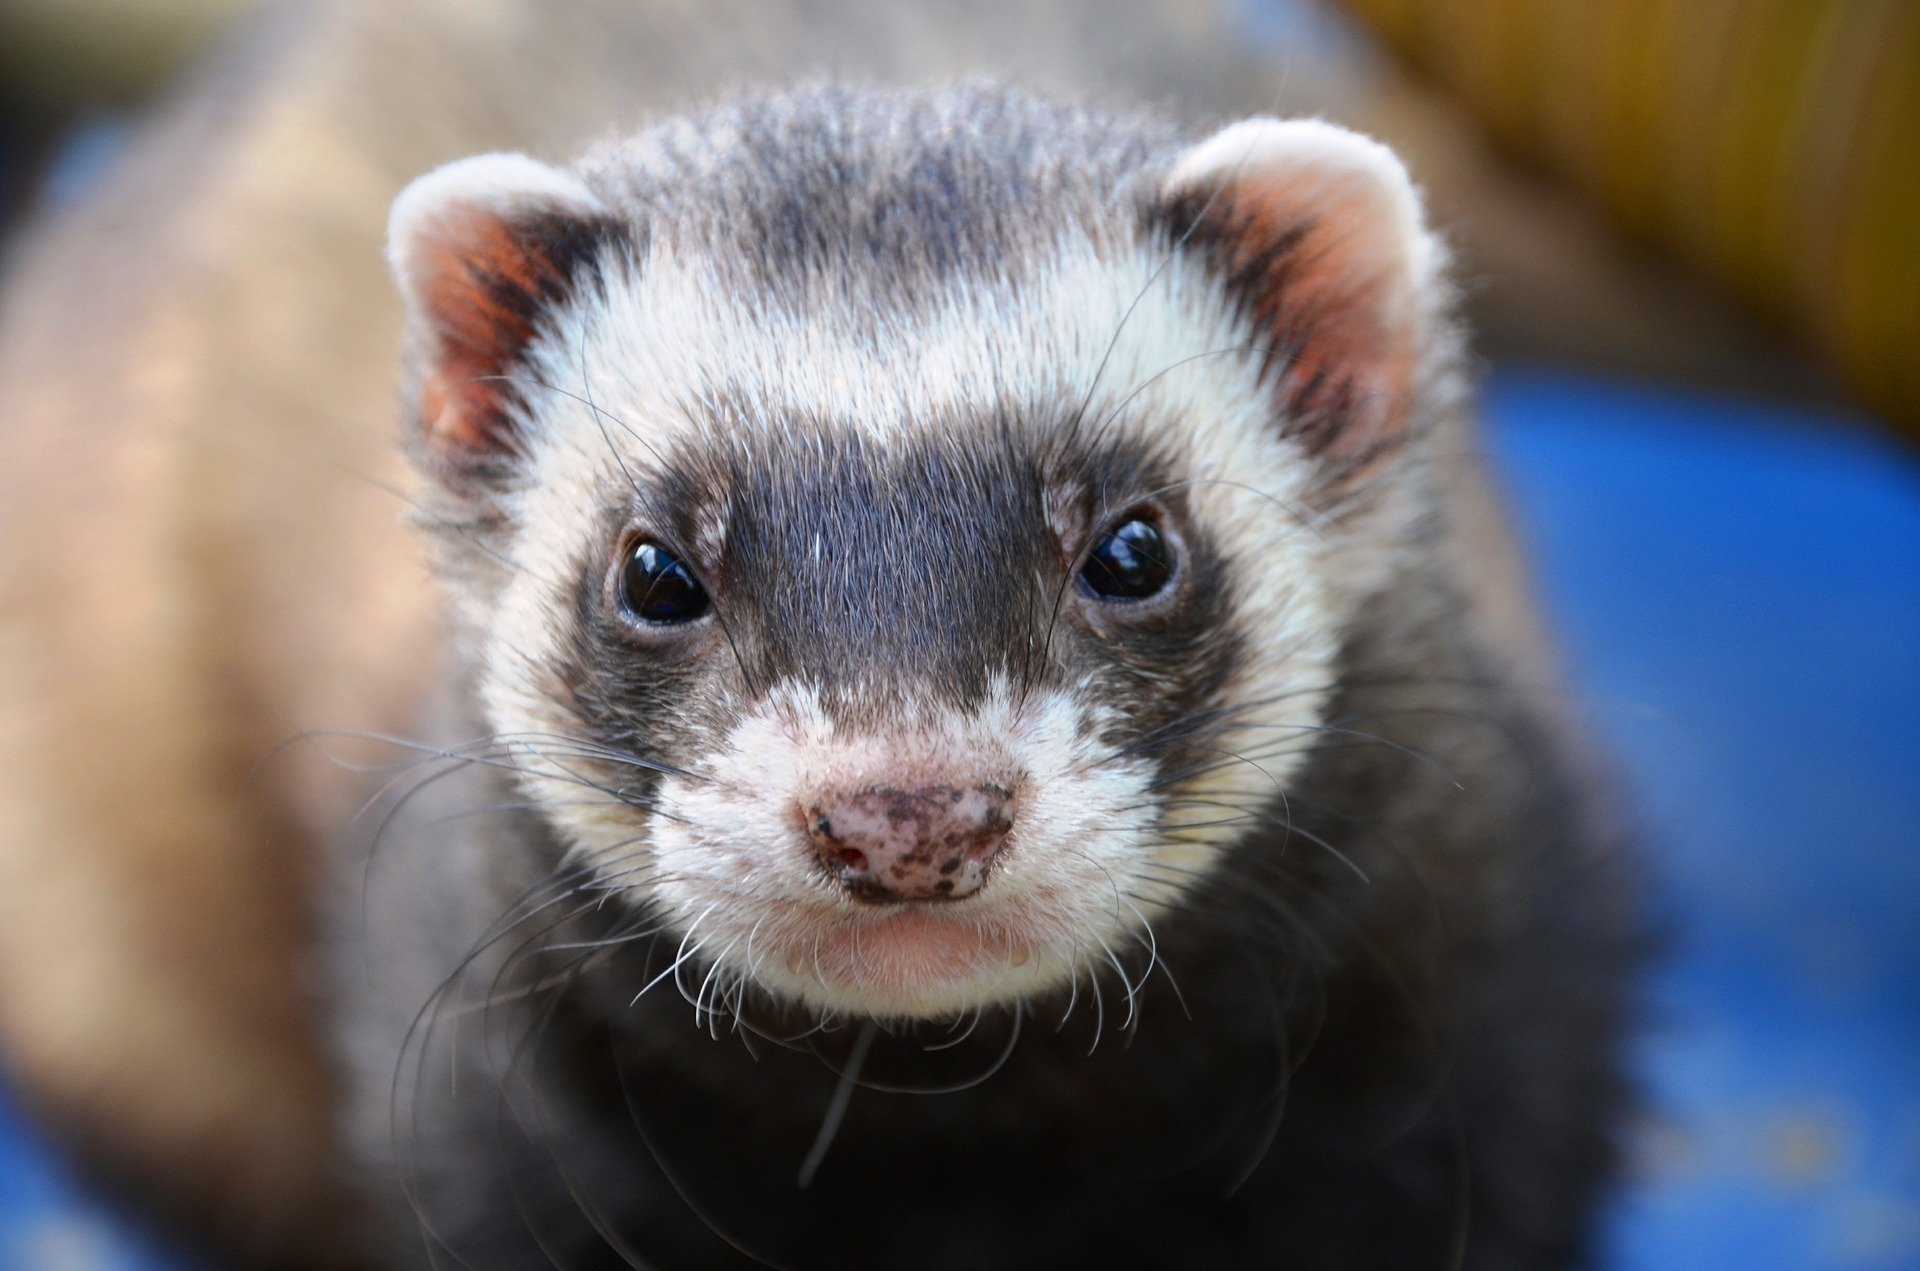 Ferret animal eyes